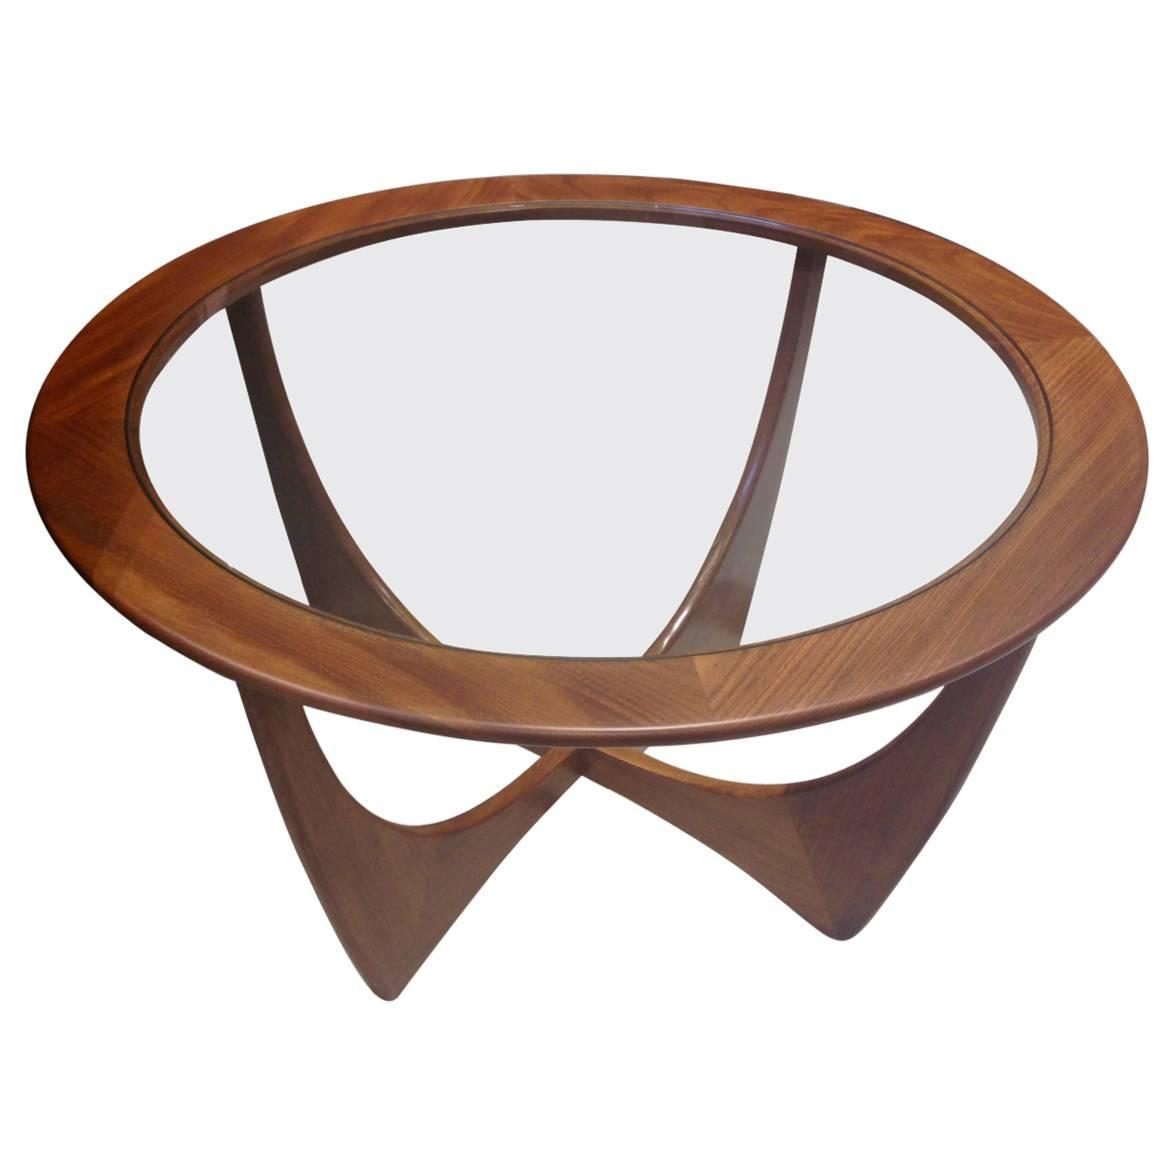 Astro coffee table by victor wilkins for g plan for sale at 1stdibs geotapseo Choice Image